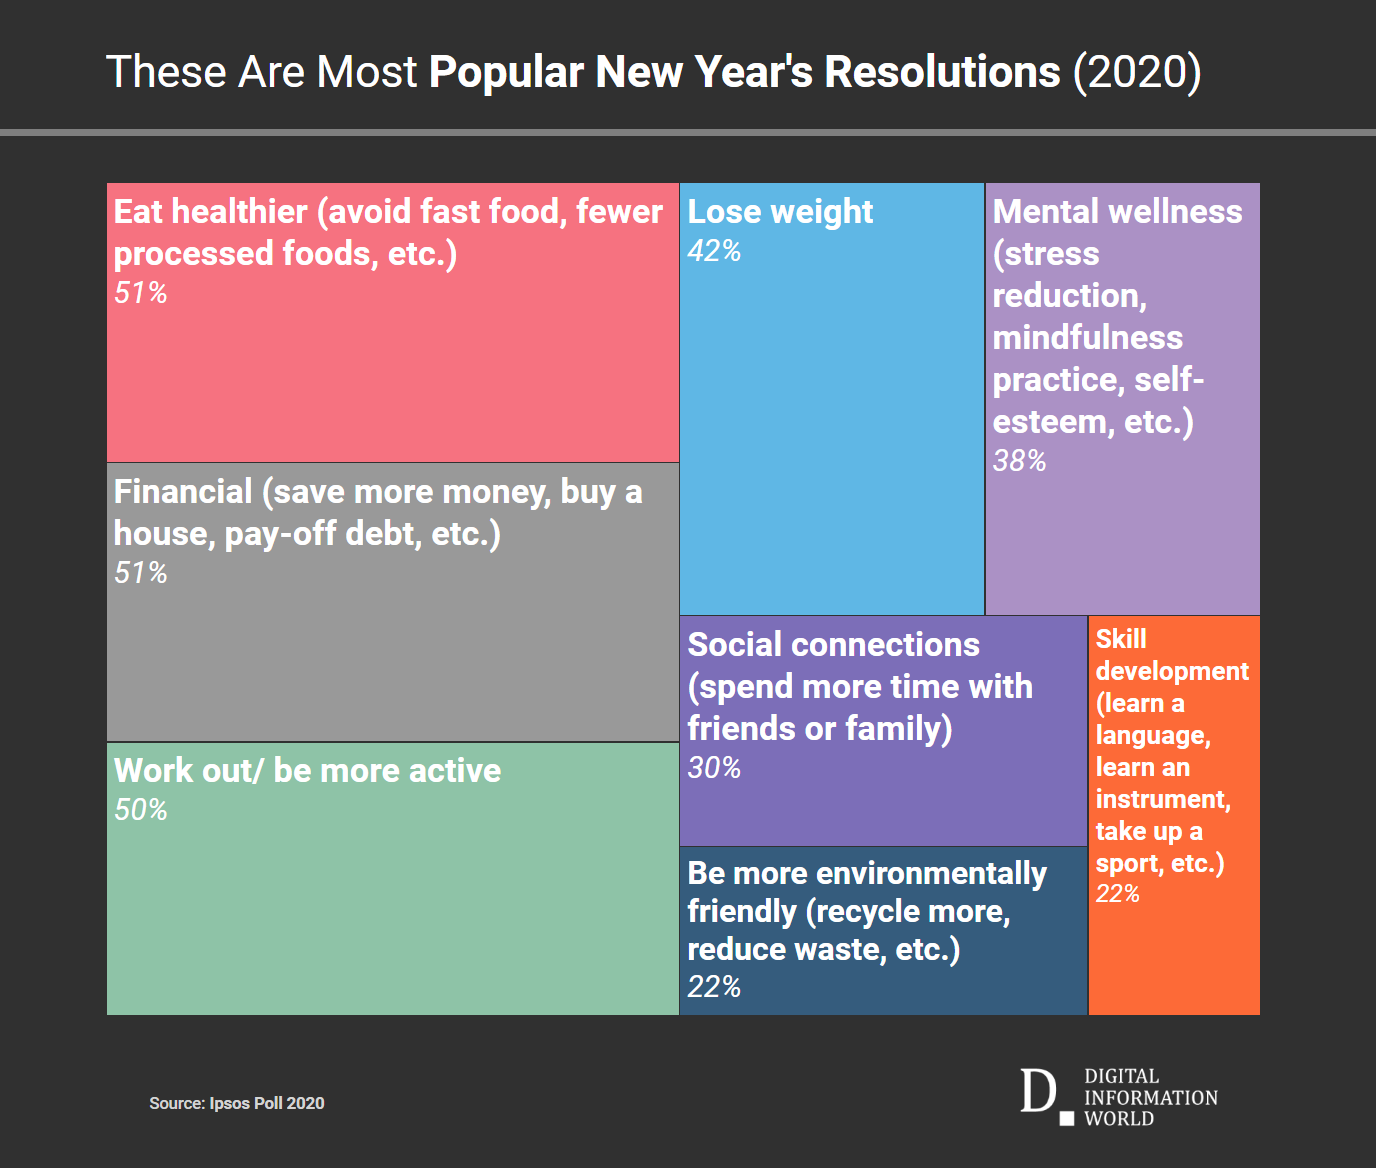 This graphic highlights the most important new year's resolutions among U.S. Americans for 2020.